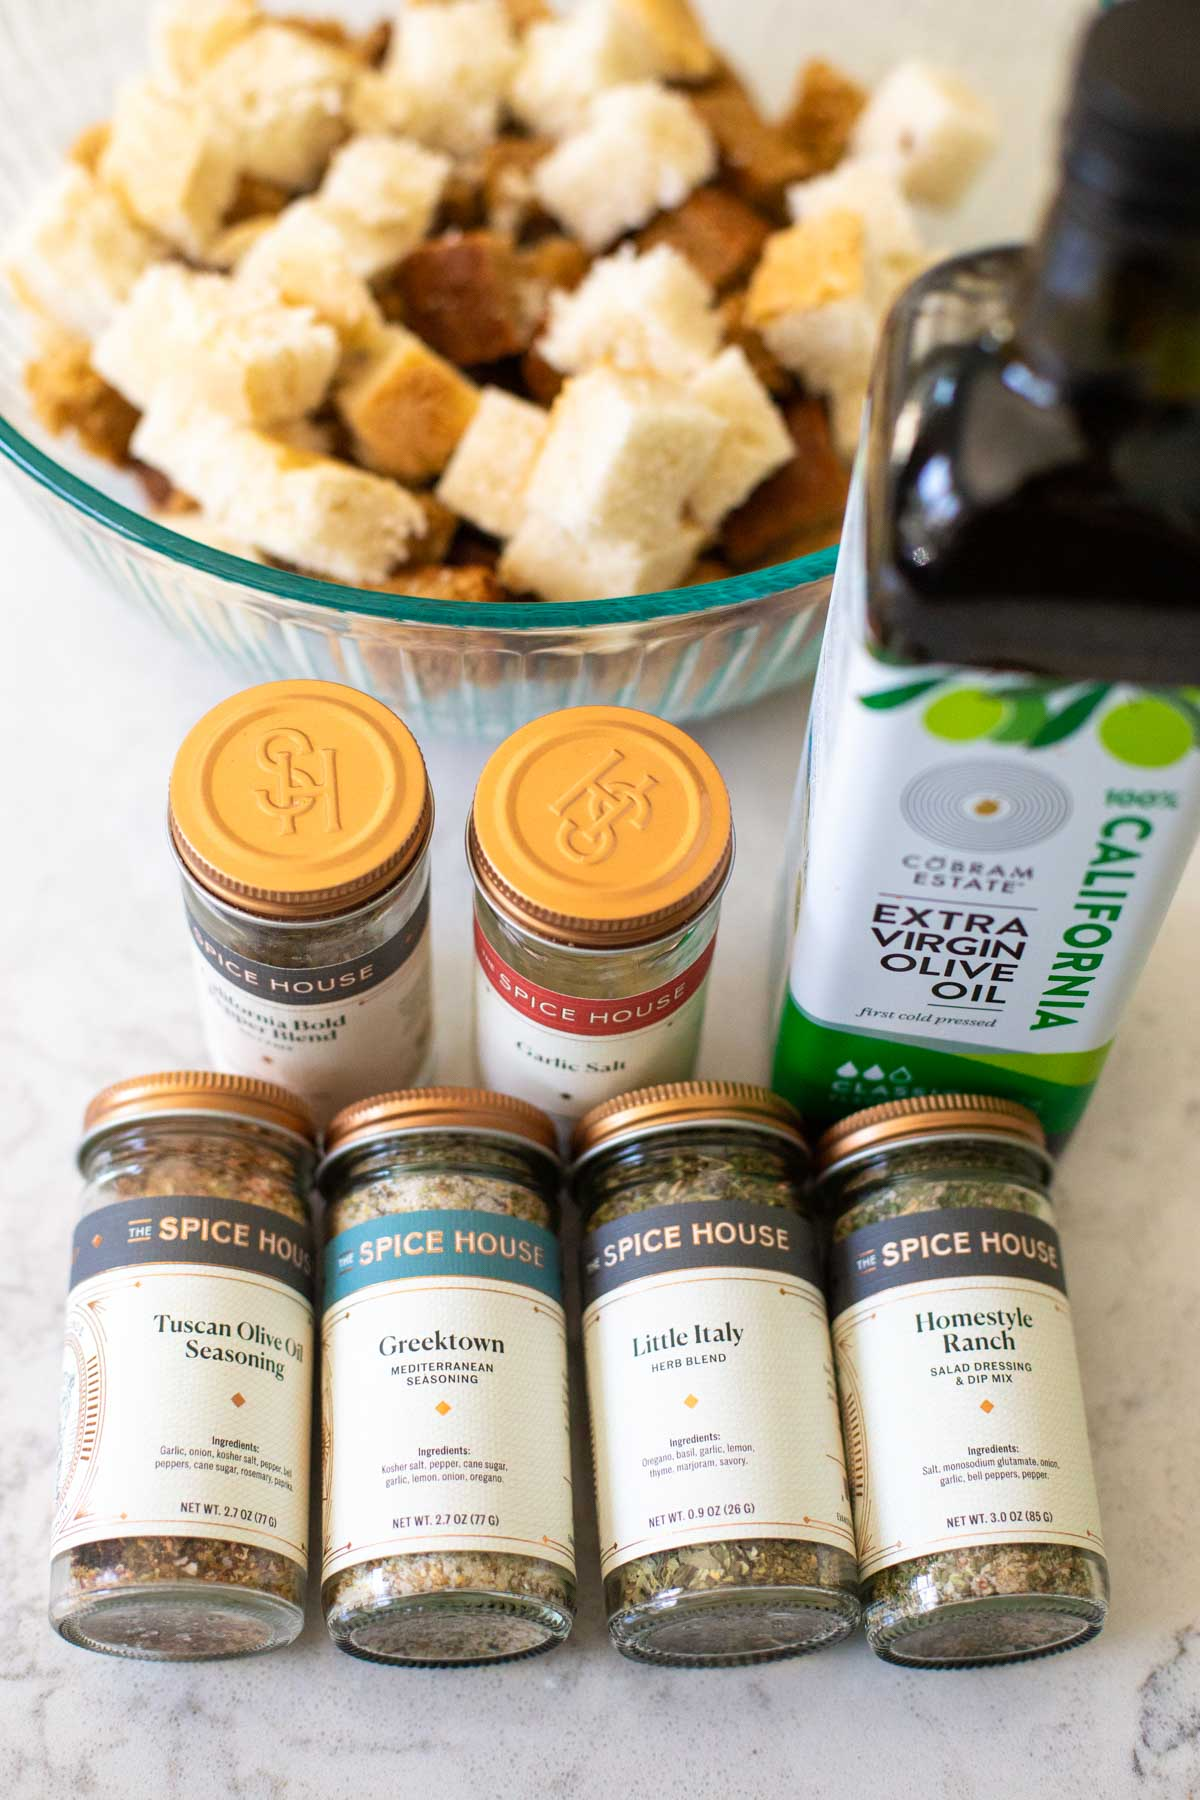 A variety of jars of seasonings that could be used to season the croutons sit next to a jar of olive oil.